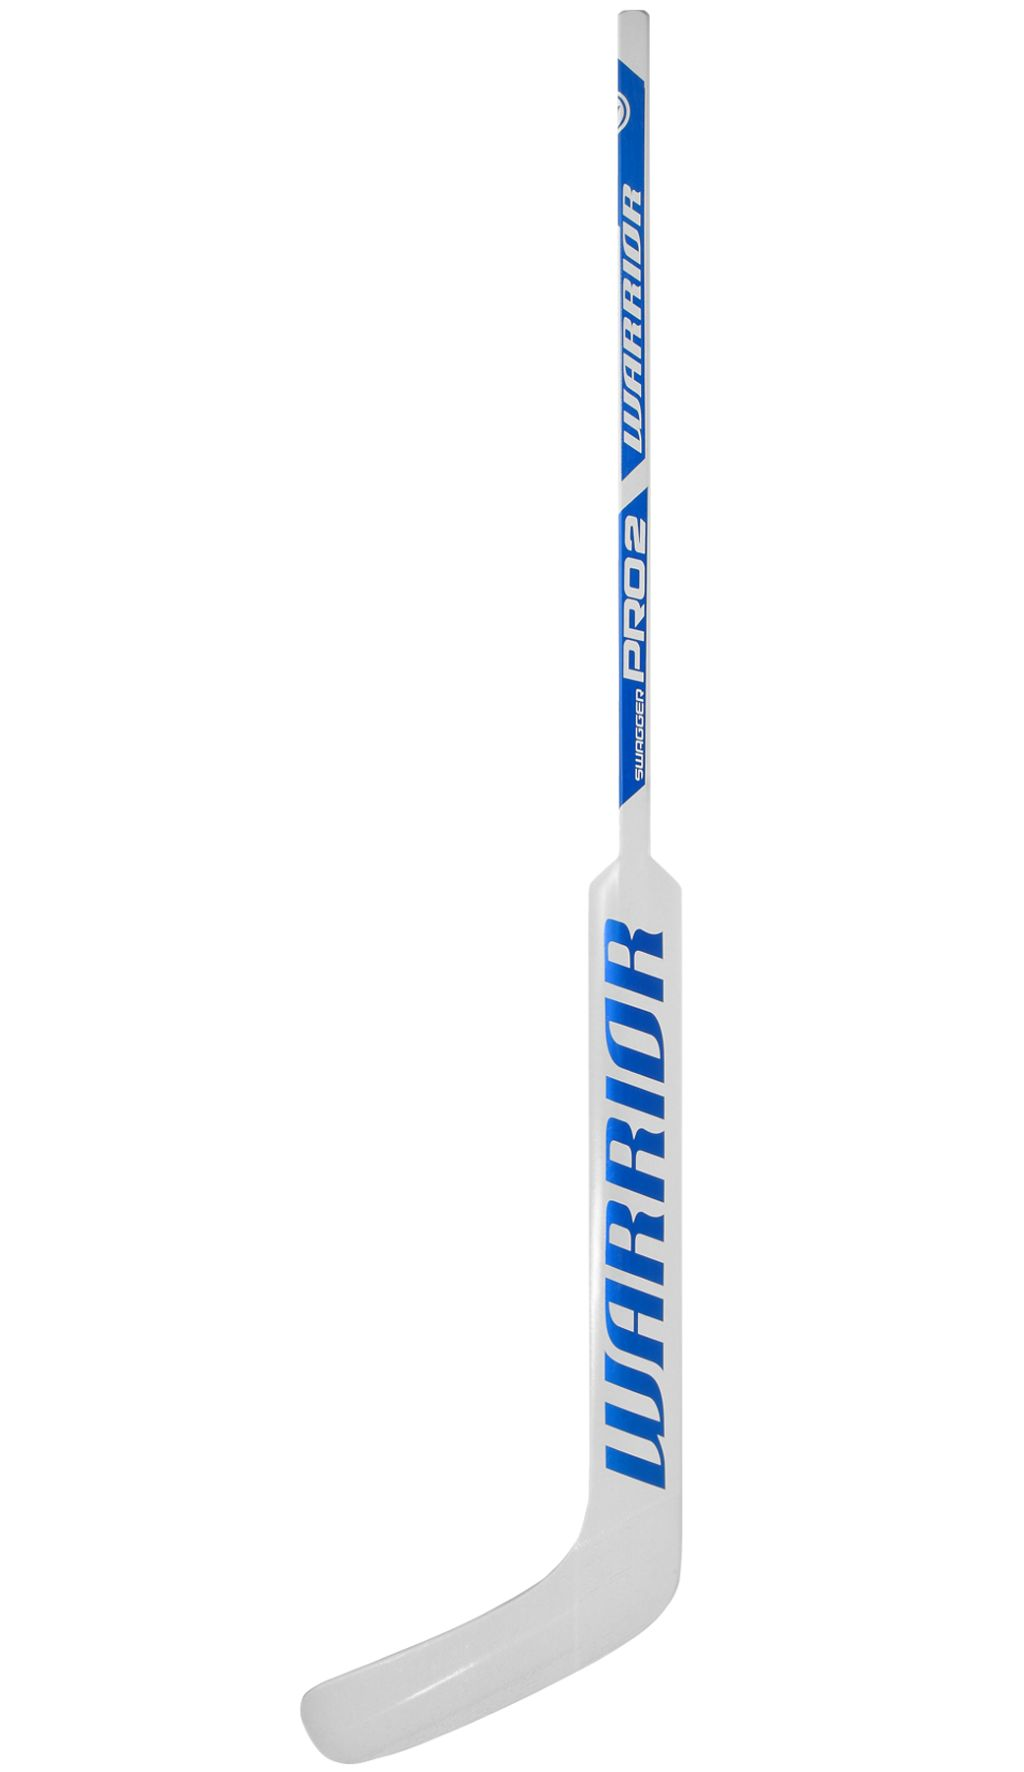 Warrior Swagger Pro2 Int 23,5 mv maila